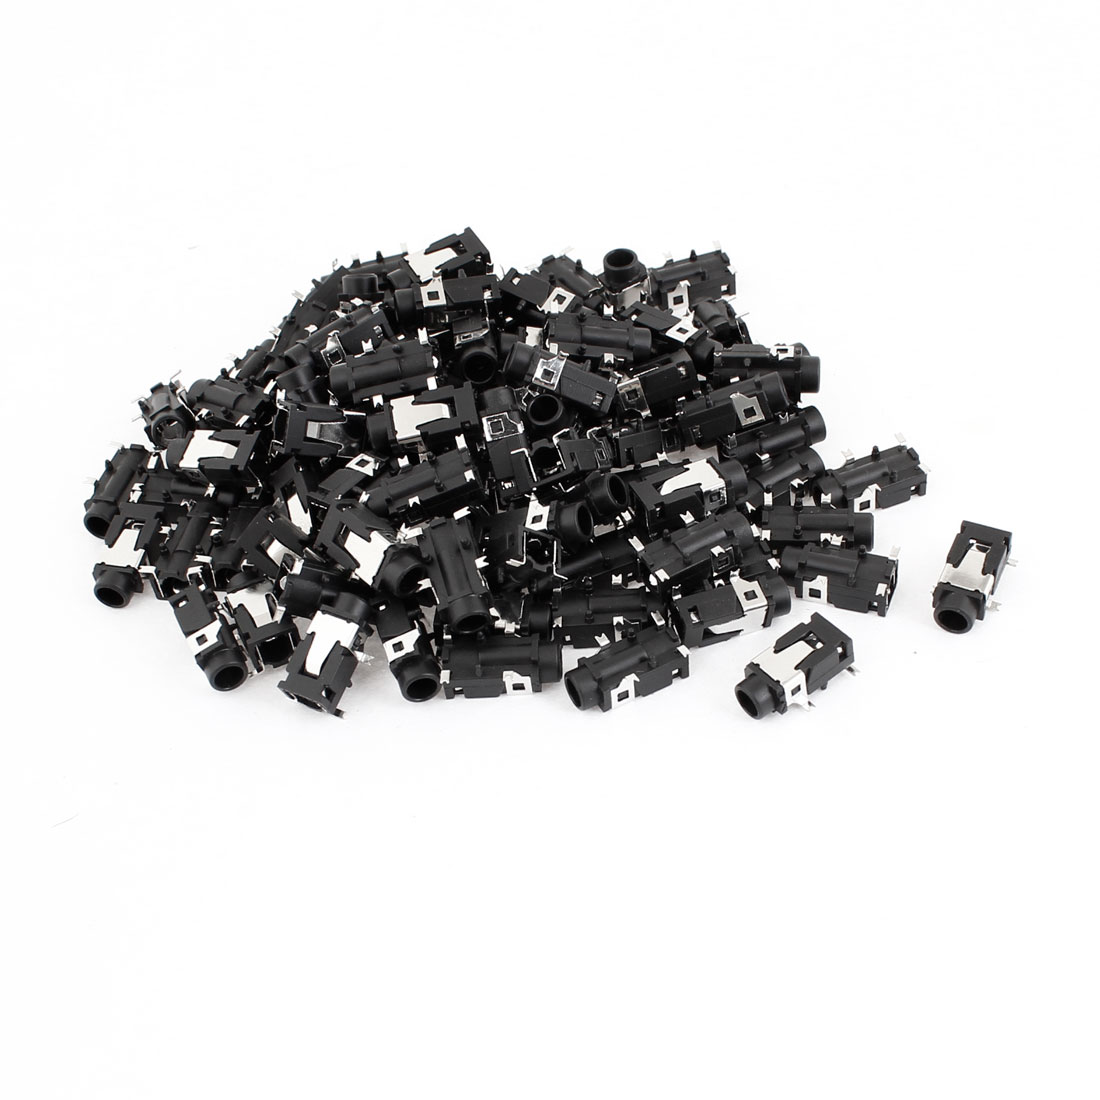 Black 4 Pin 3.5mm Headphone Stereo Jack PCB Panel Mount Socket 100 Pcs